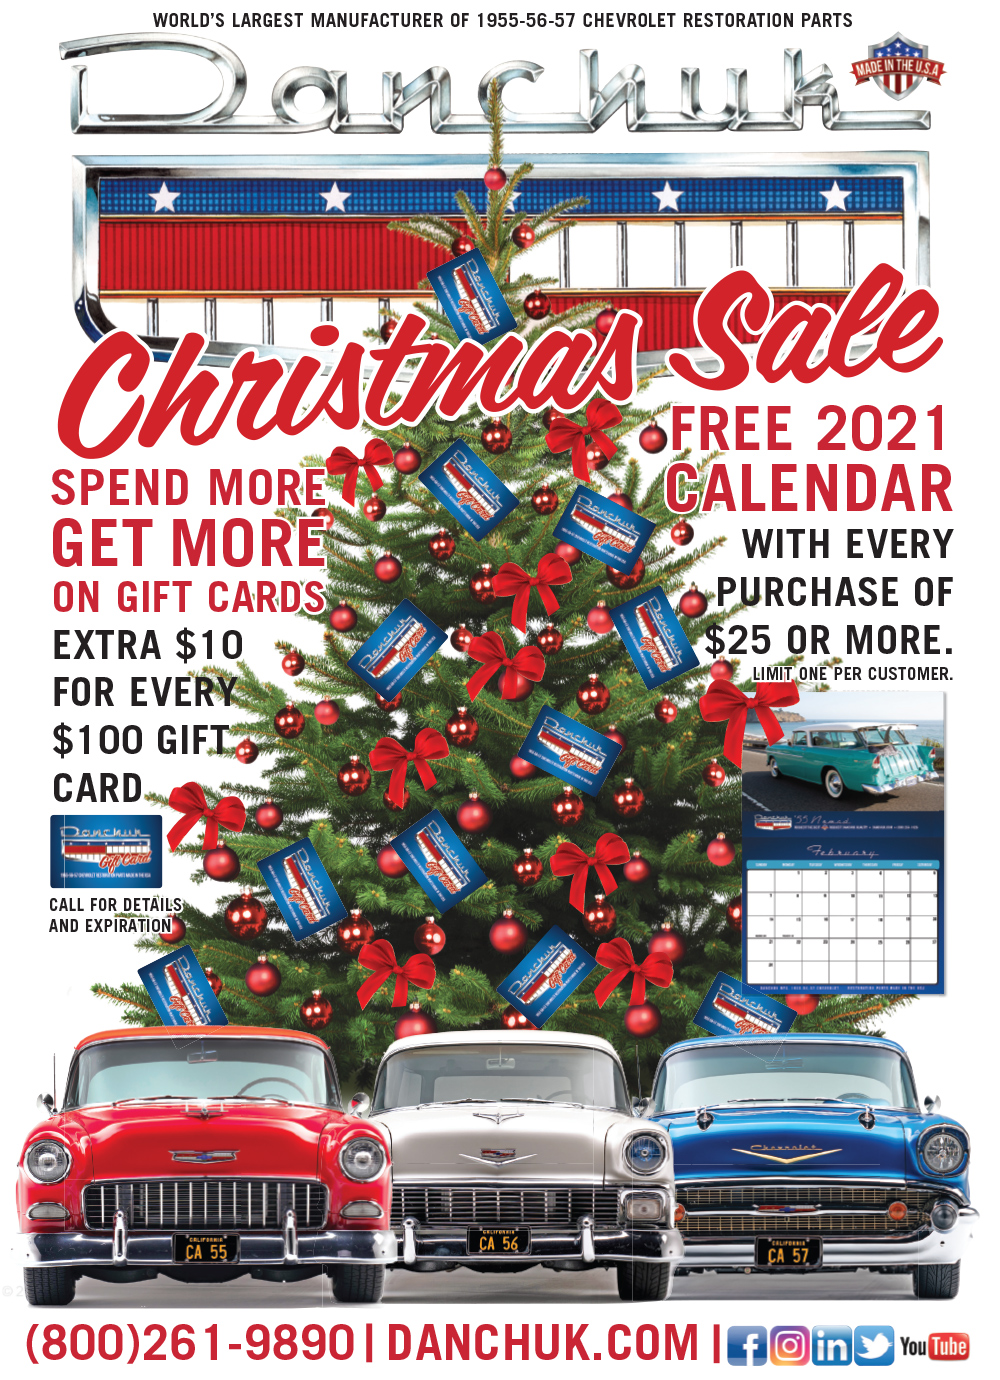 Danchuk Christmas Sale Advertisement